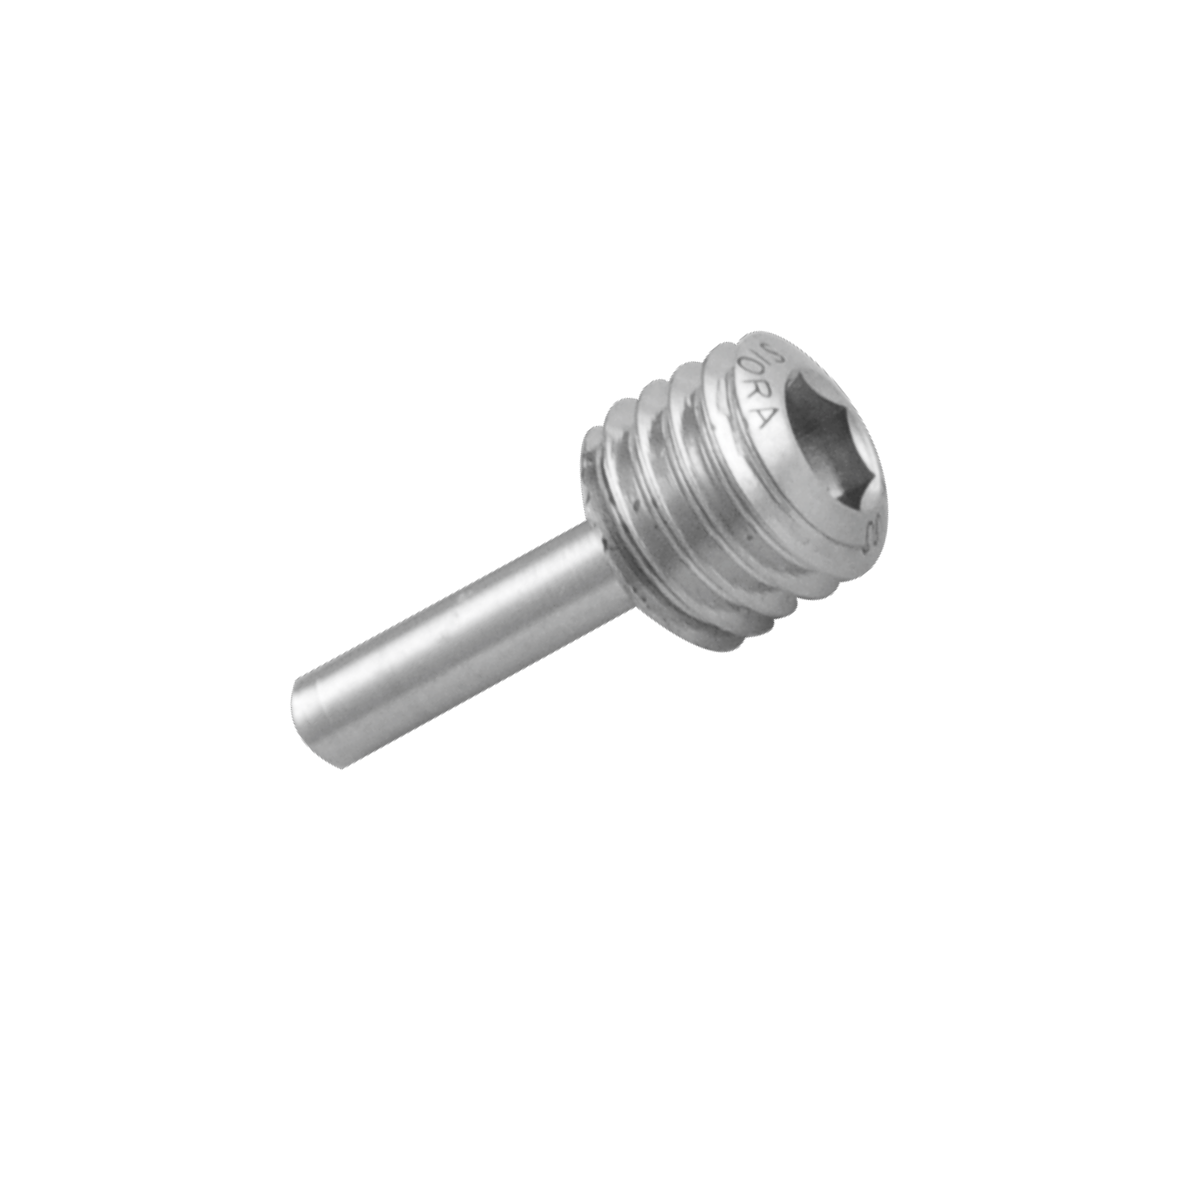 Set Screw for TFN/PFN Nail